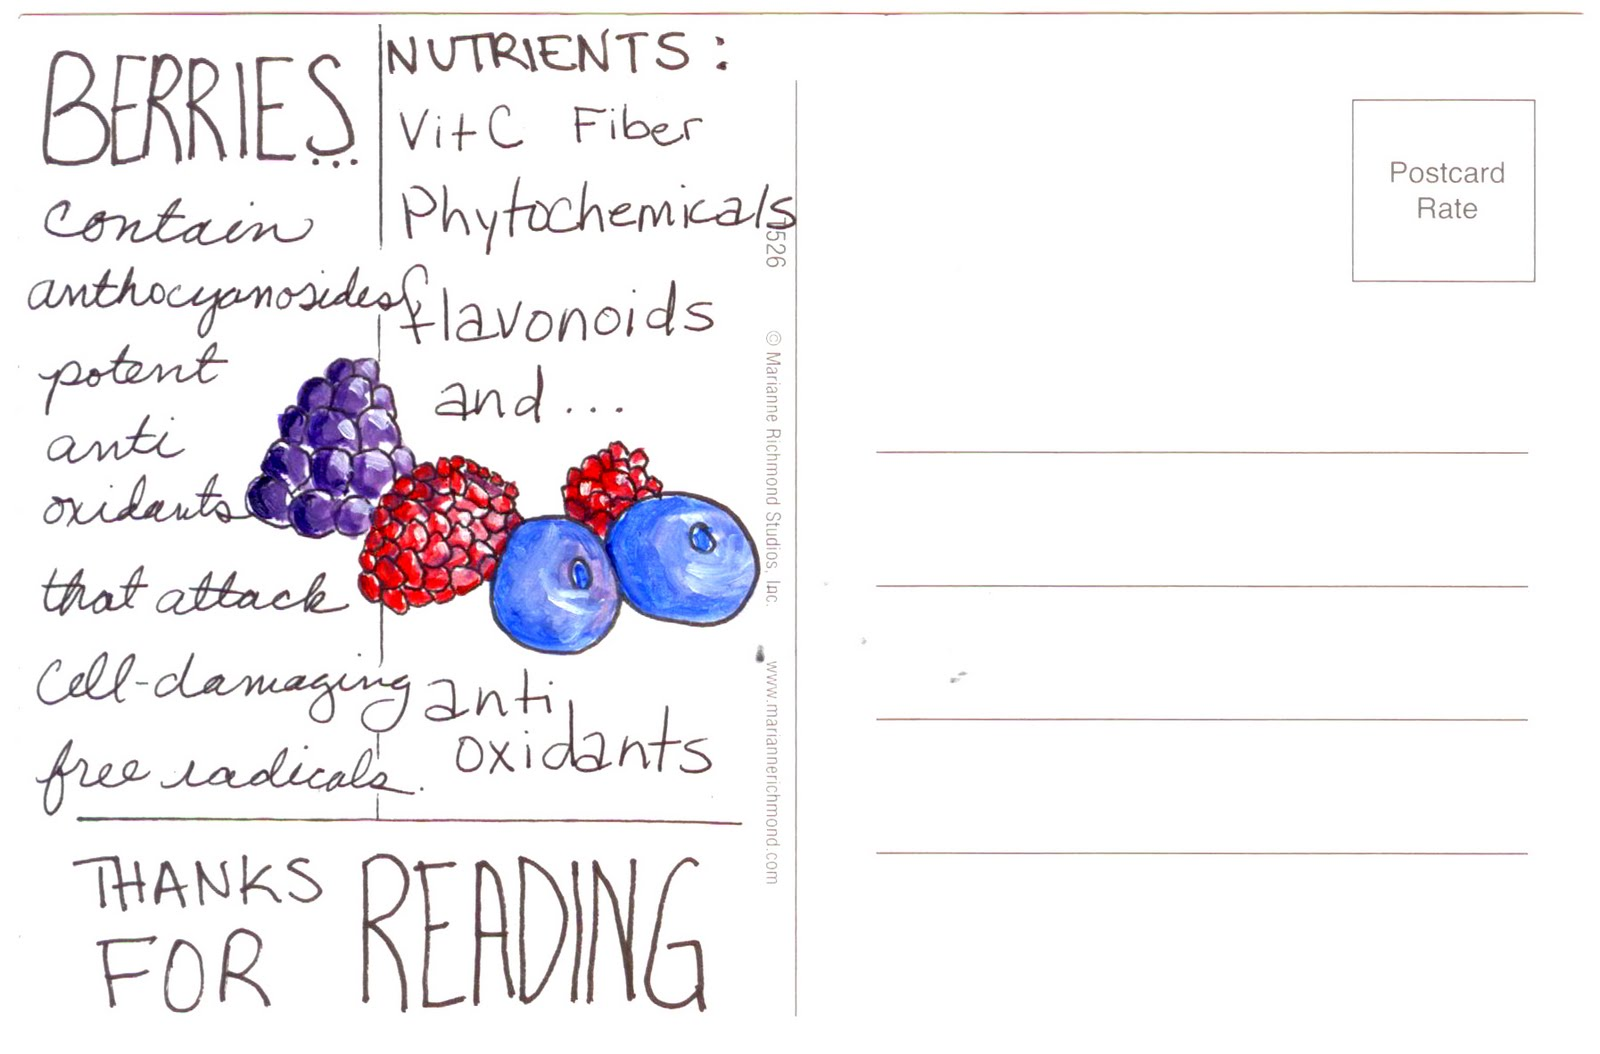 [Berries+PostCard.jpg]